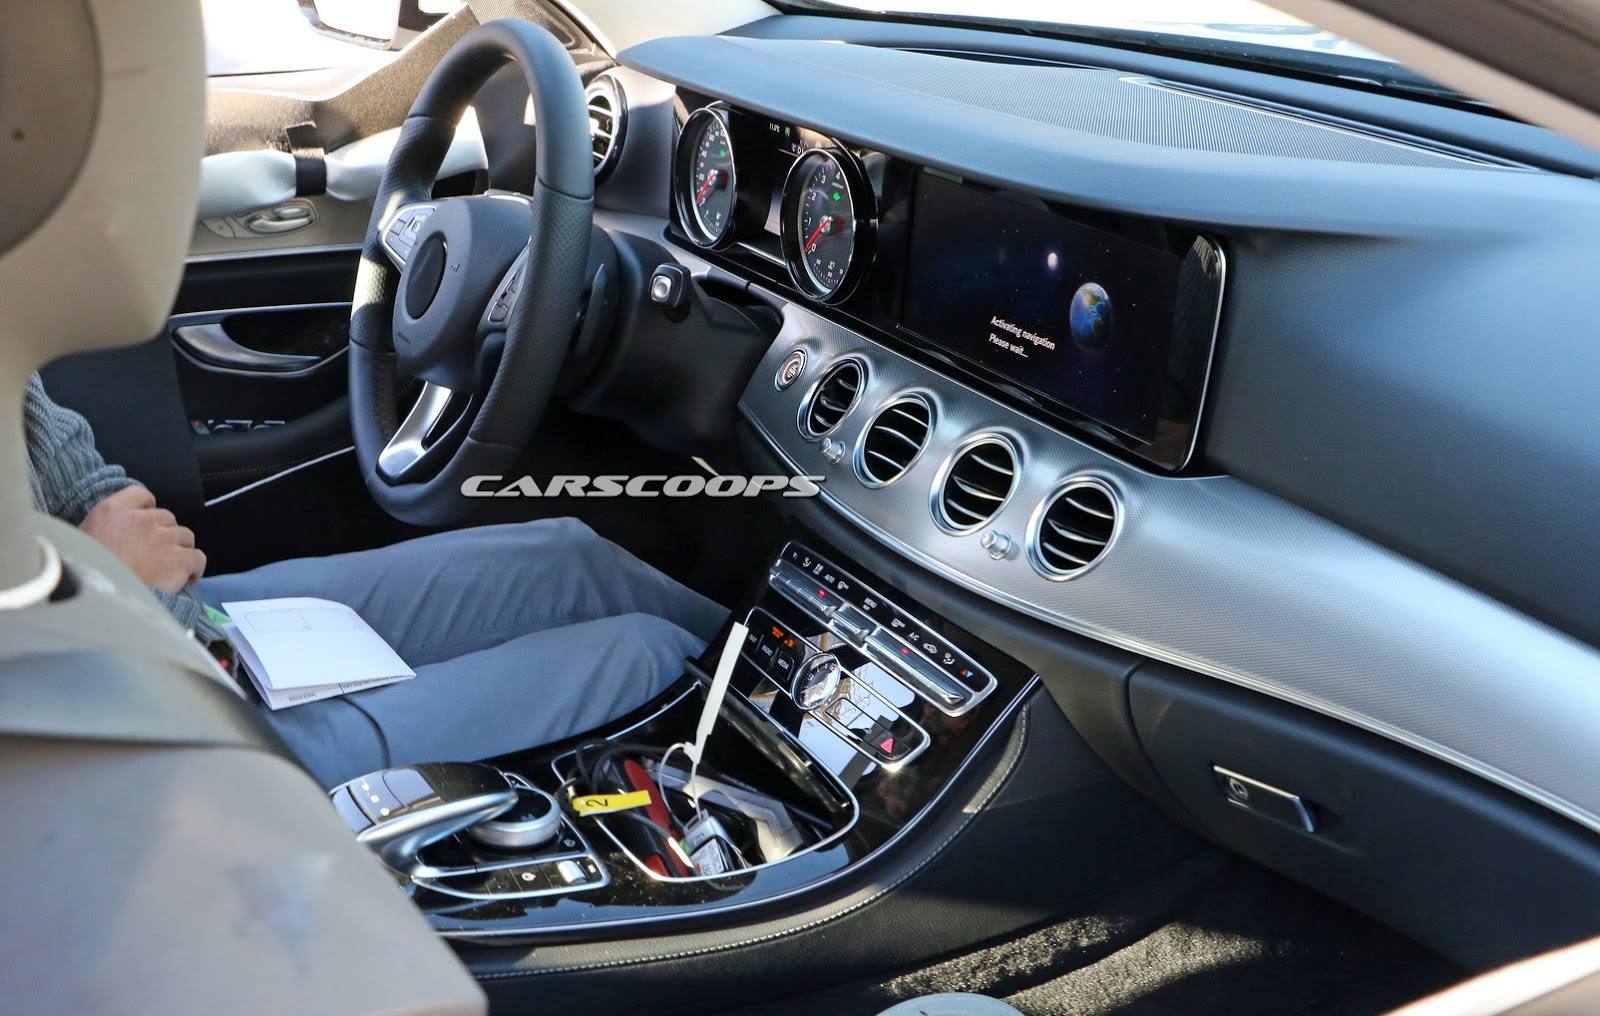 2017 mercedes benz e class first official look at interior 23 pics video